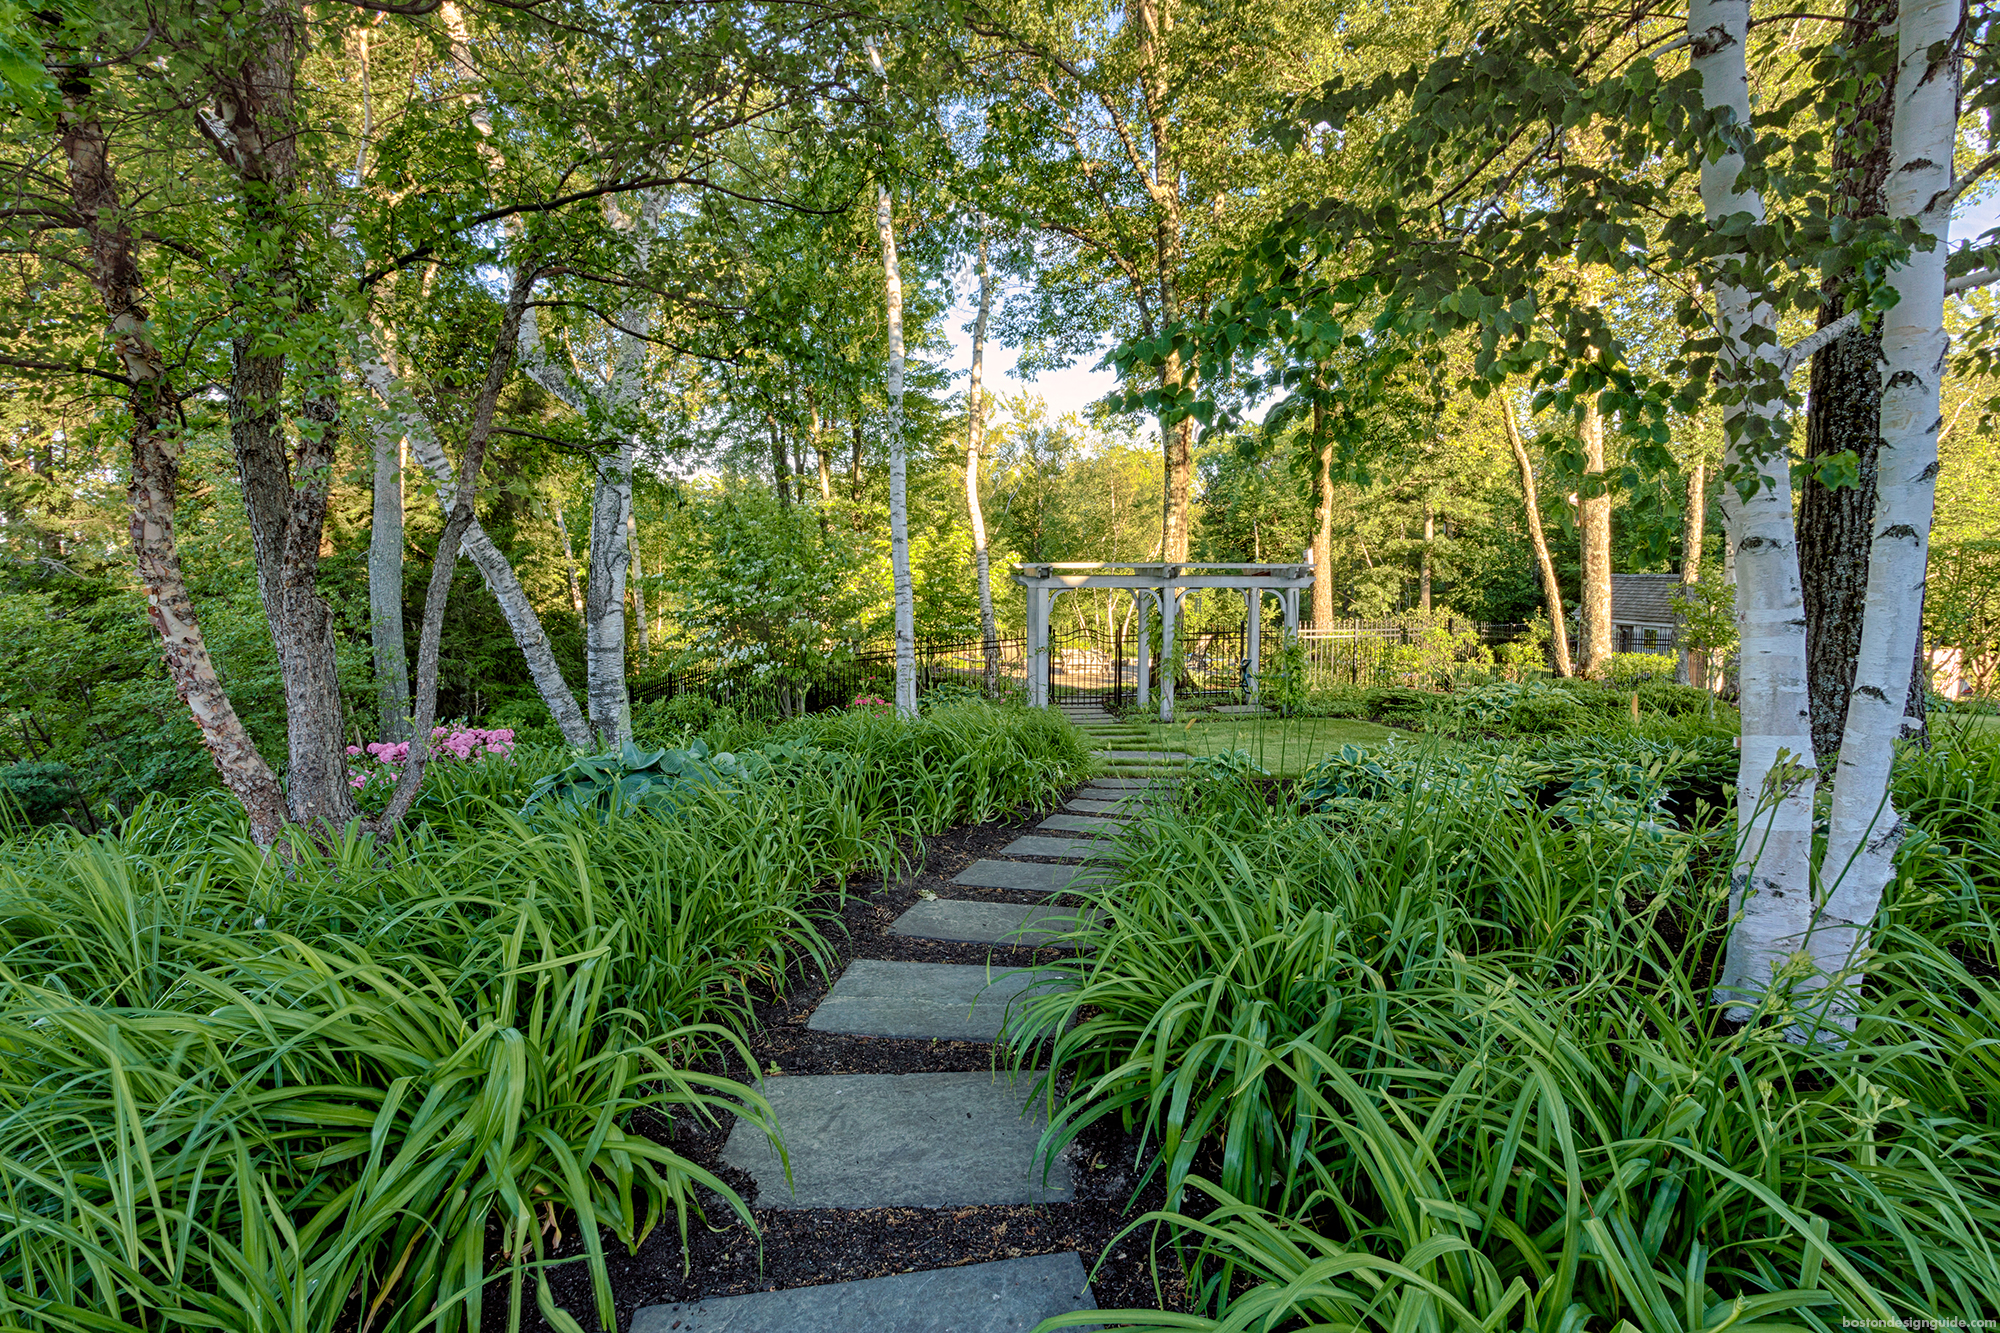 Home Garden Landscape And Walkway Design Landscape Architecture By  Pellettieri Associates, Inc.